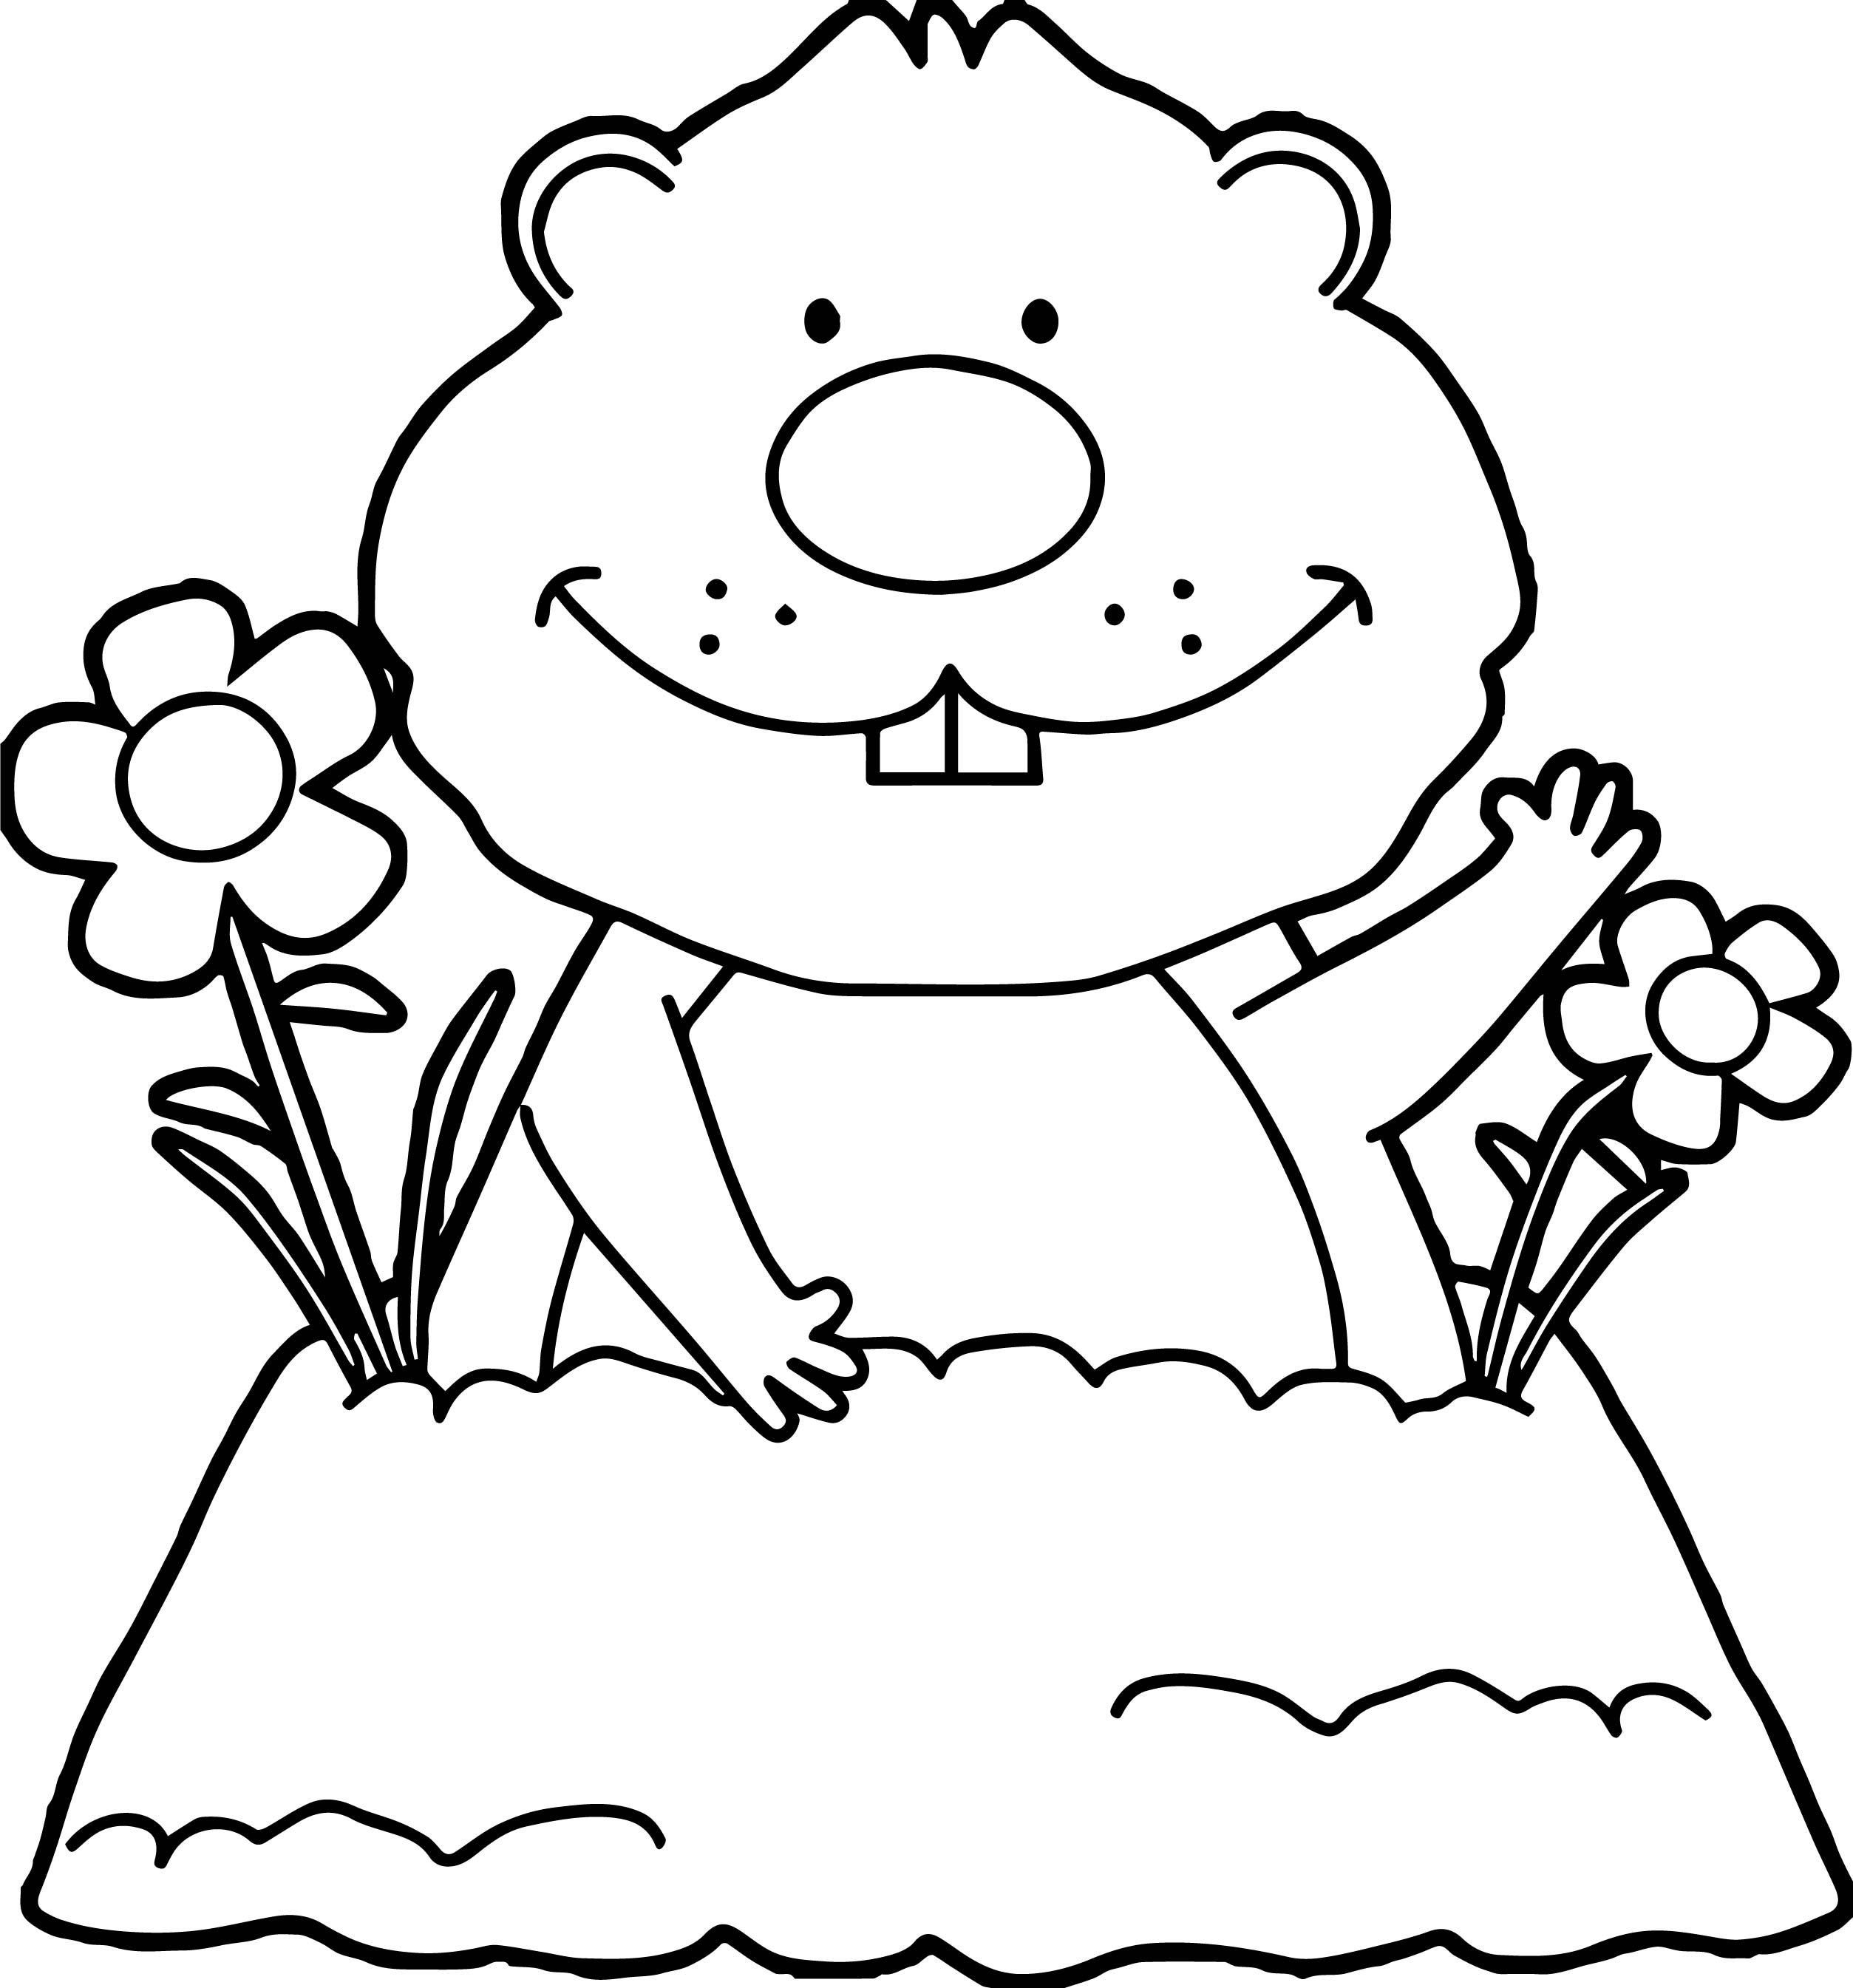 Groundhog Coloring Page Best Groundhogs Coloring Pages